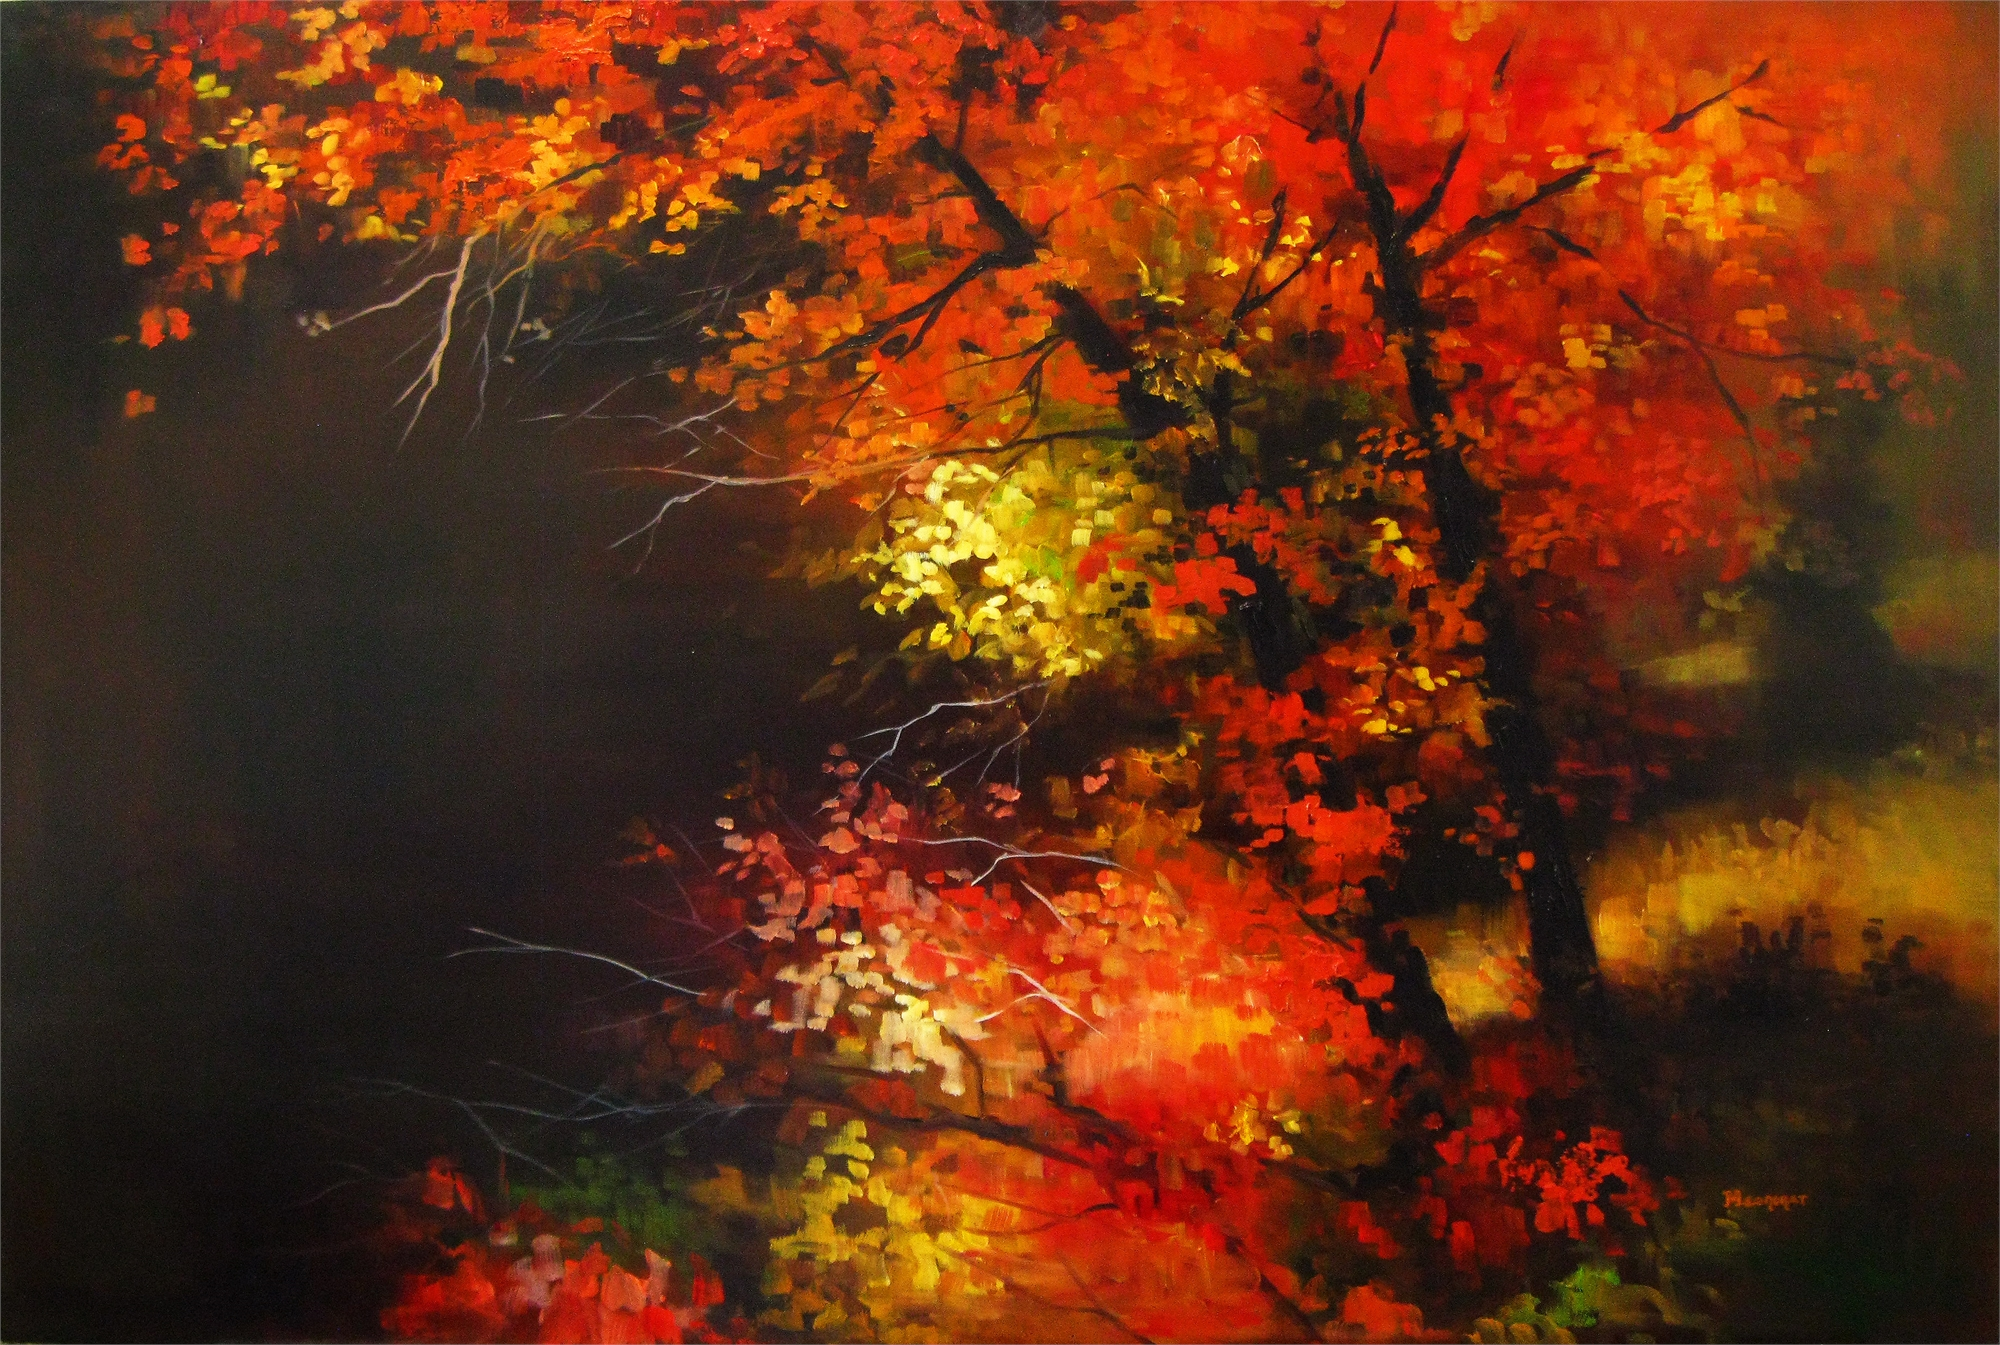 Autumn Flare by Michelle Condrat